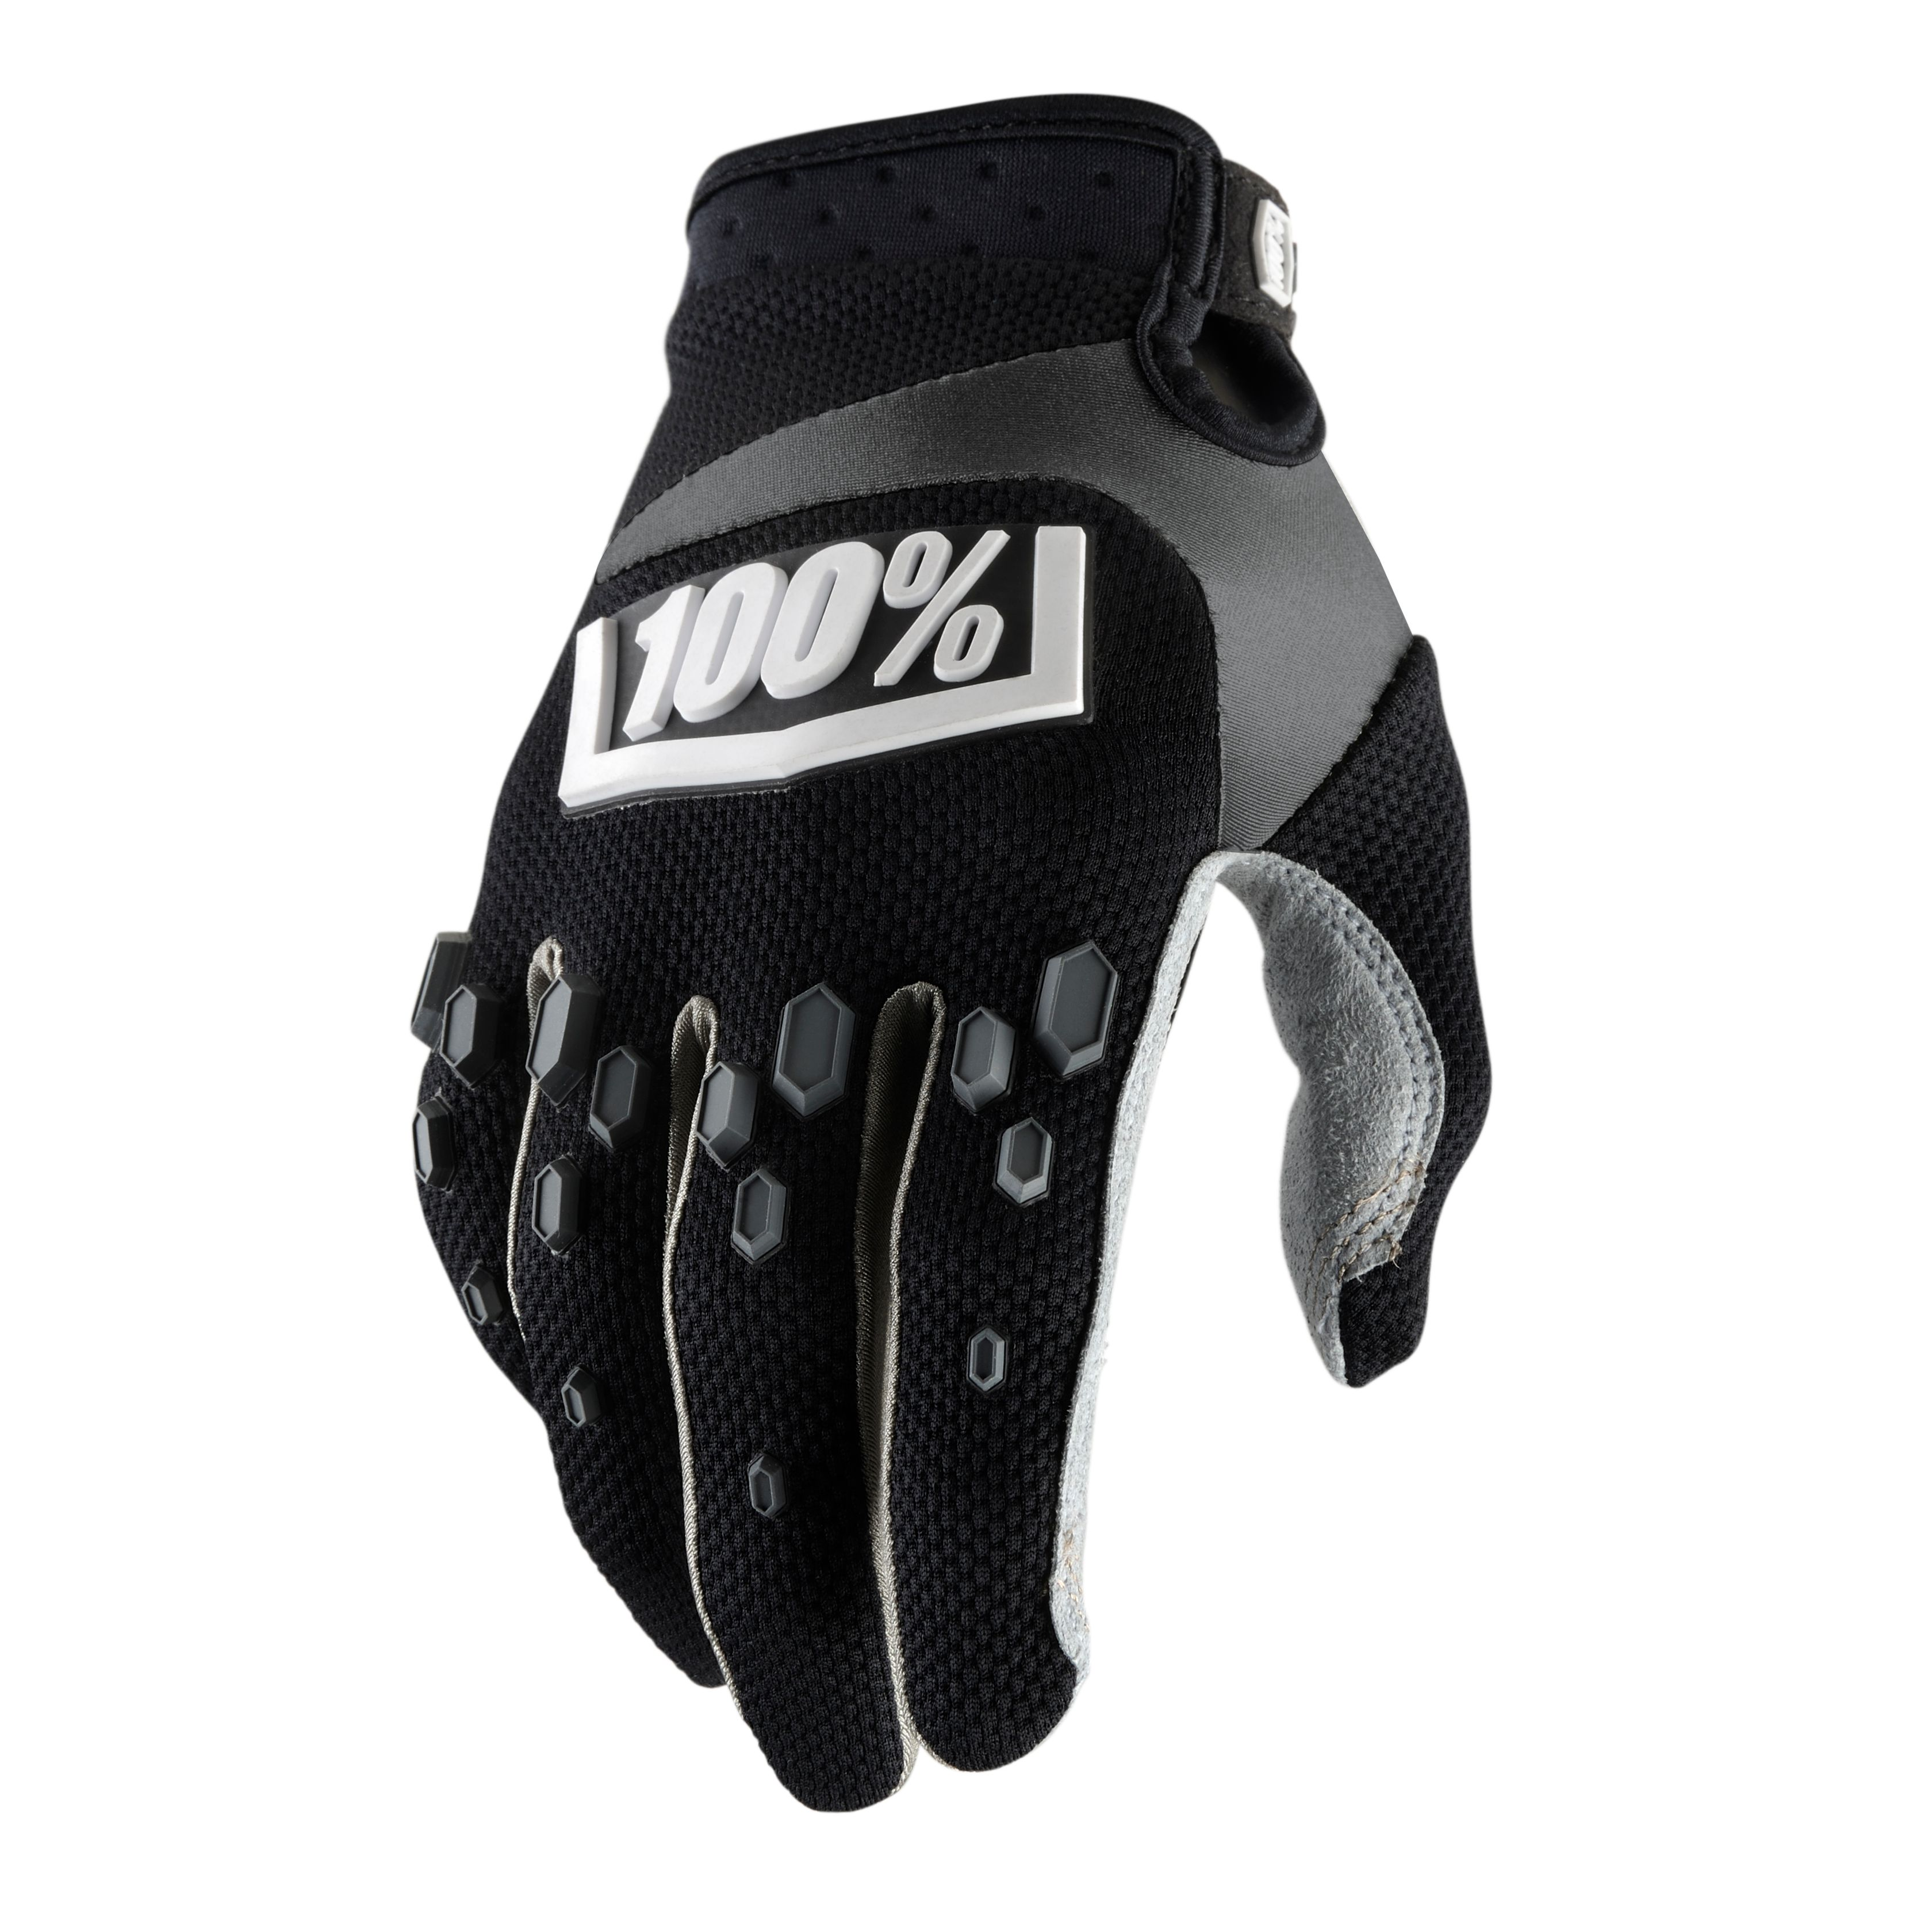 Gants Cross 100% Airmatic - Noir